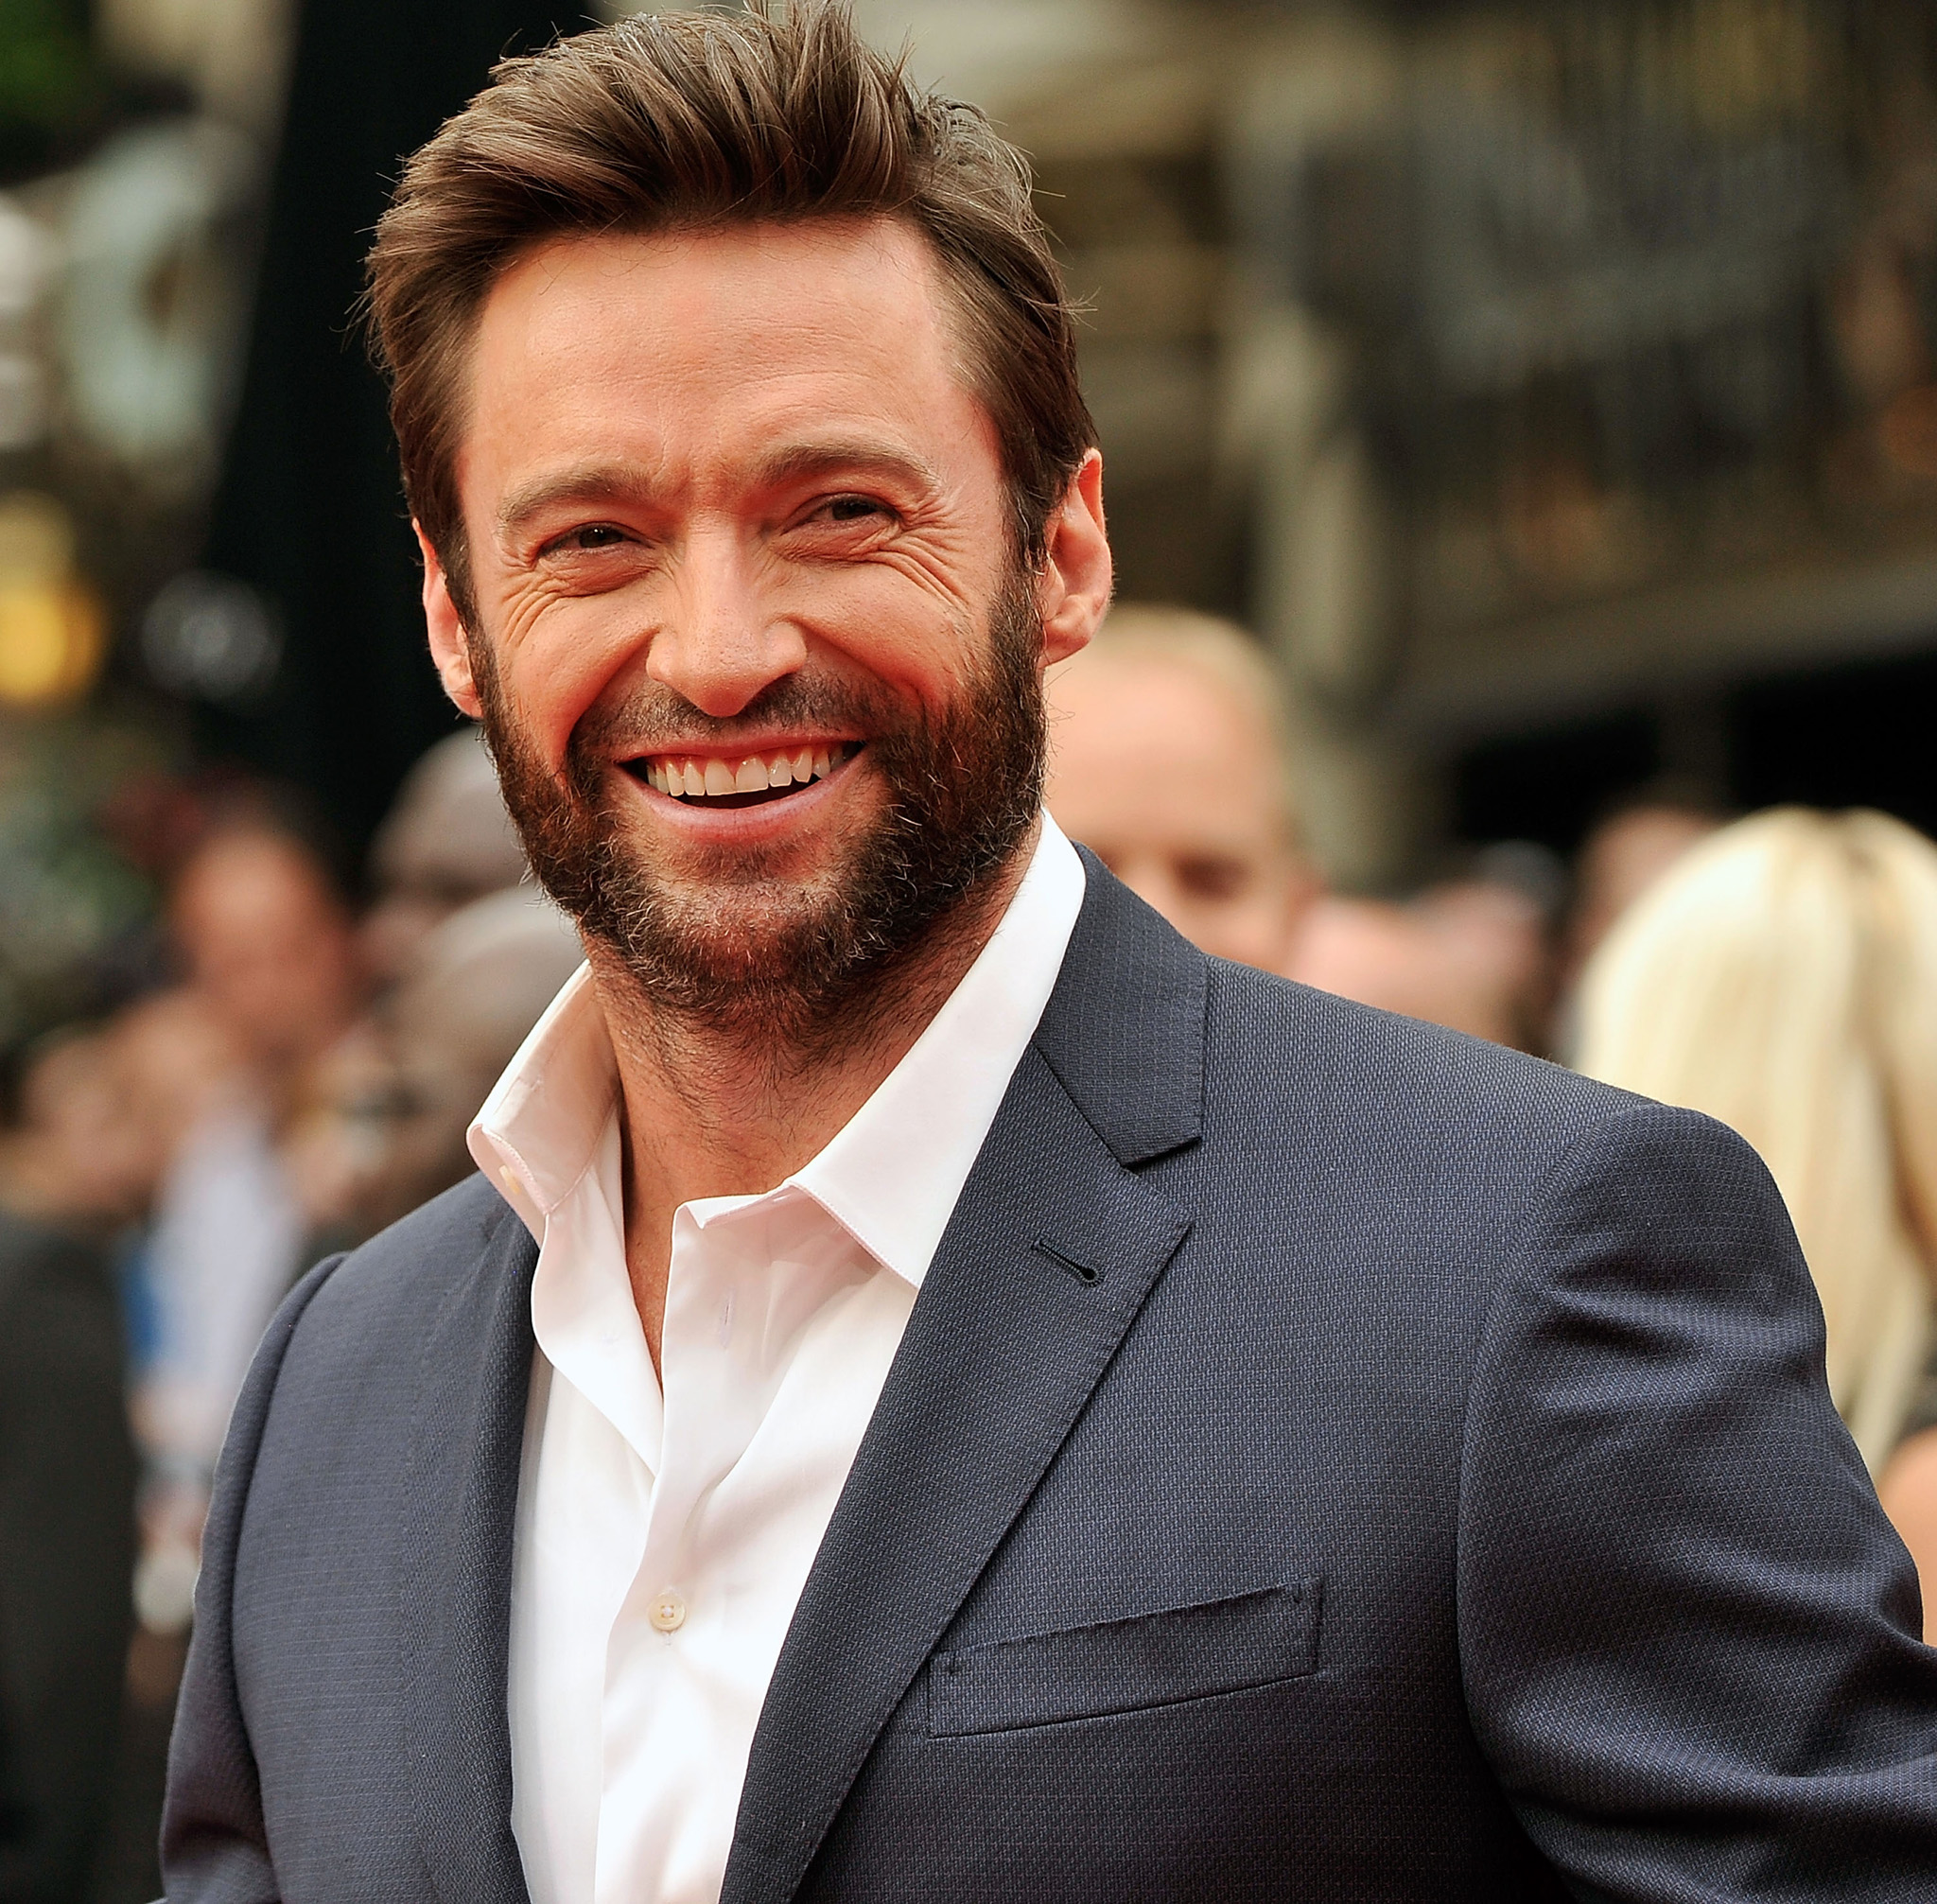 Hugh Jackman: Wolverine has not eclipsed my career- I could still play any character | The Independent